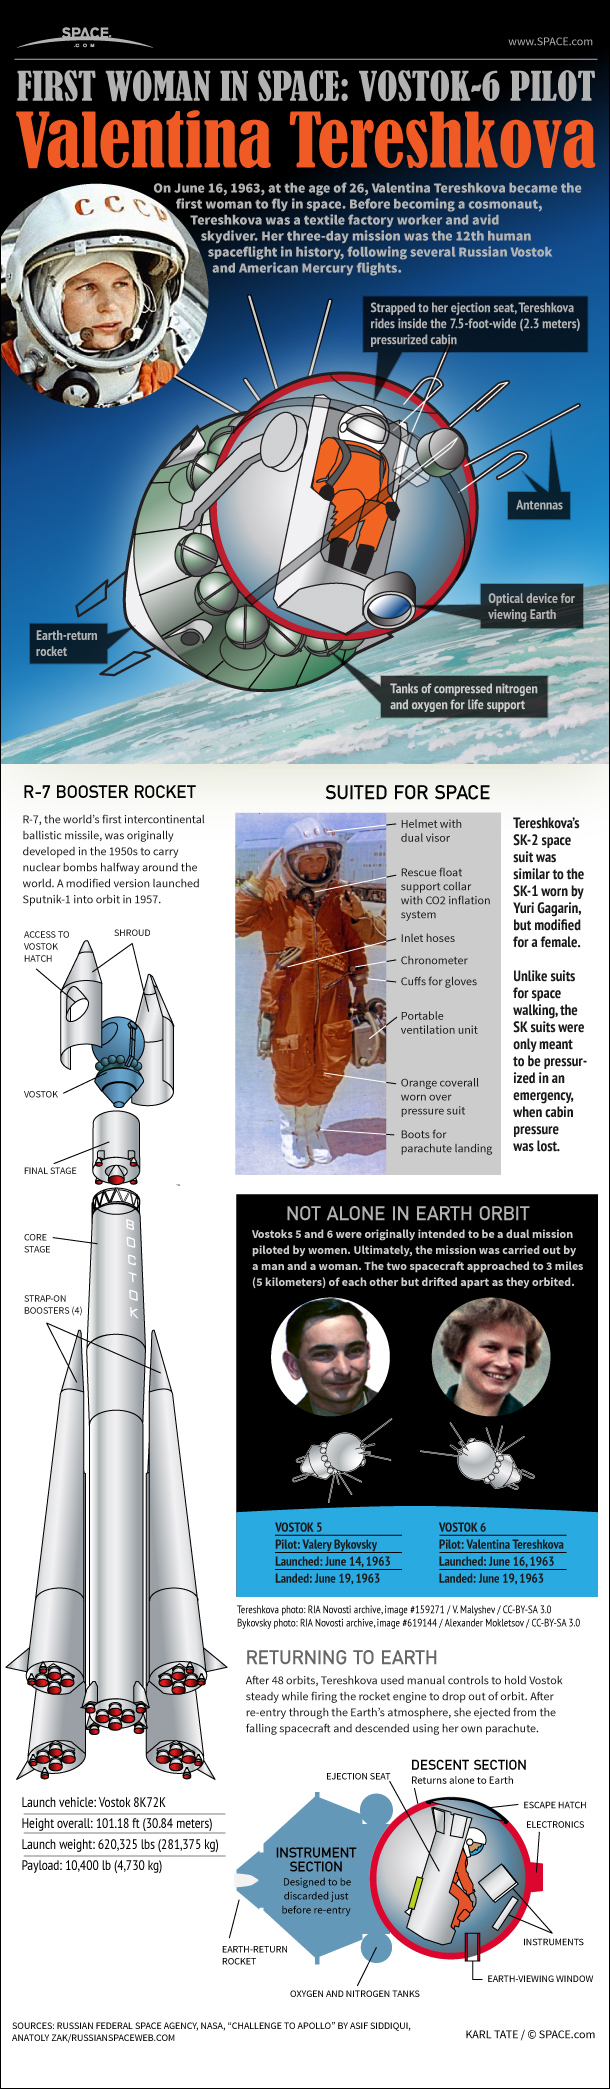 How Valentina Tereshkova's 1963 Vostok-6 Flight Worked (Infographic)